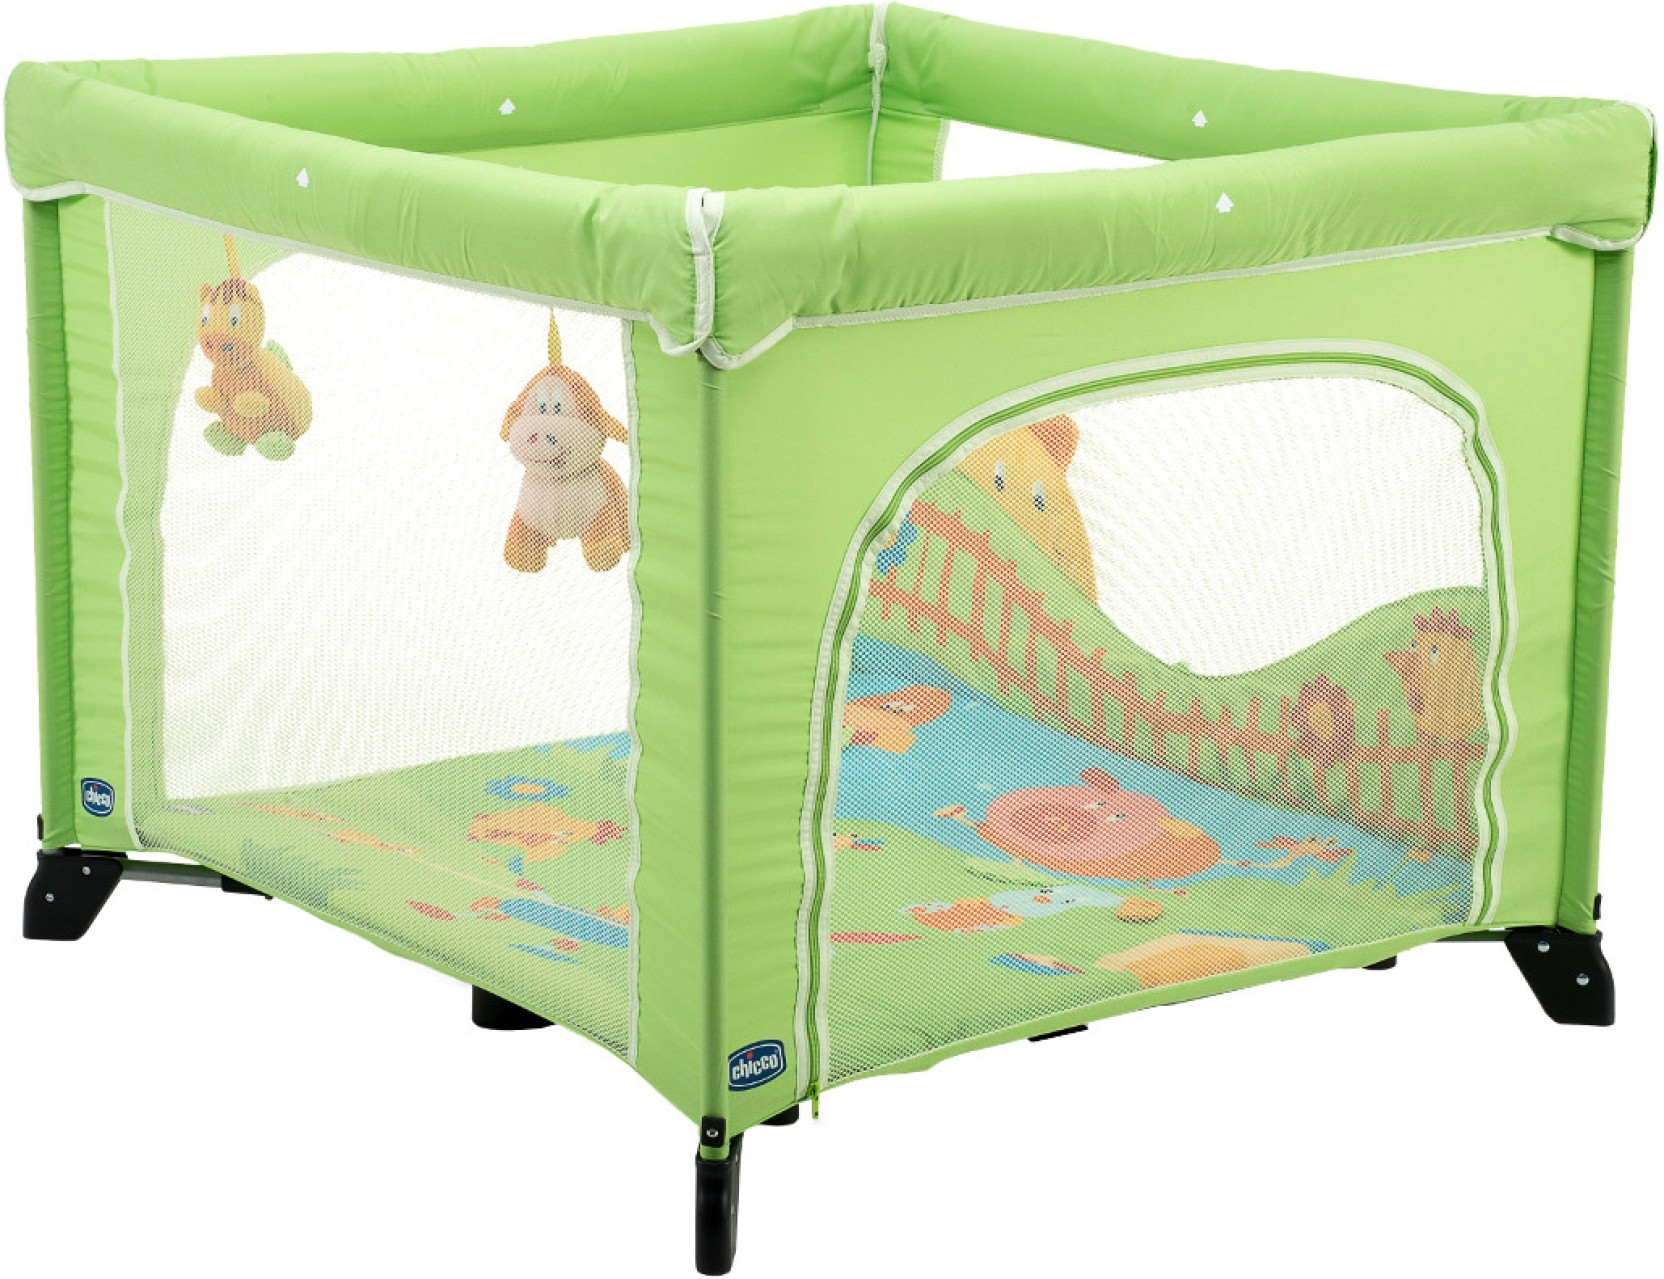 Chicco Open Playpen Cot Buy baby Cot Buy Babycare products in